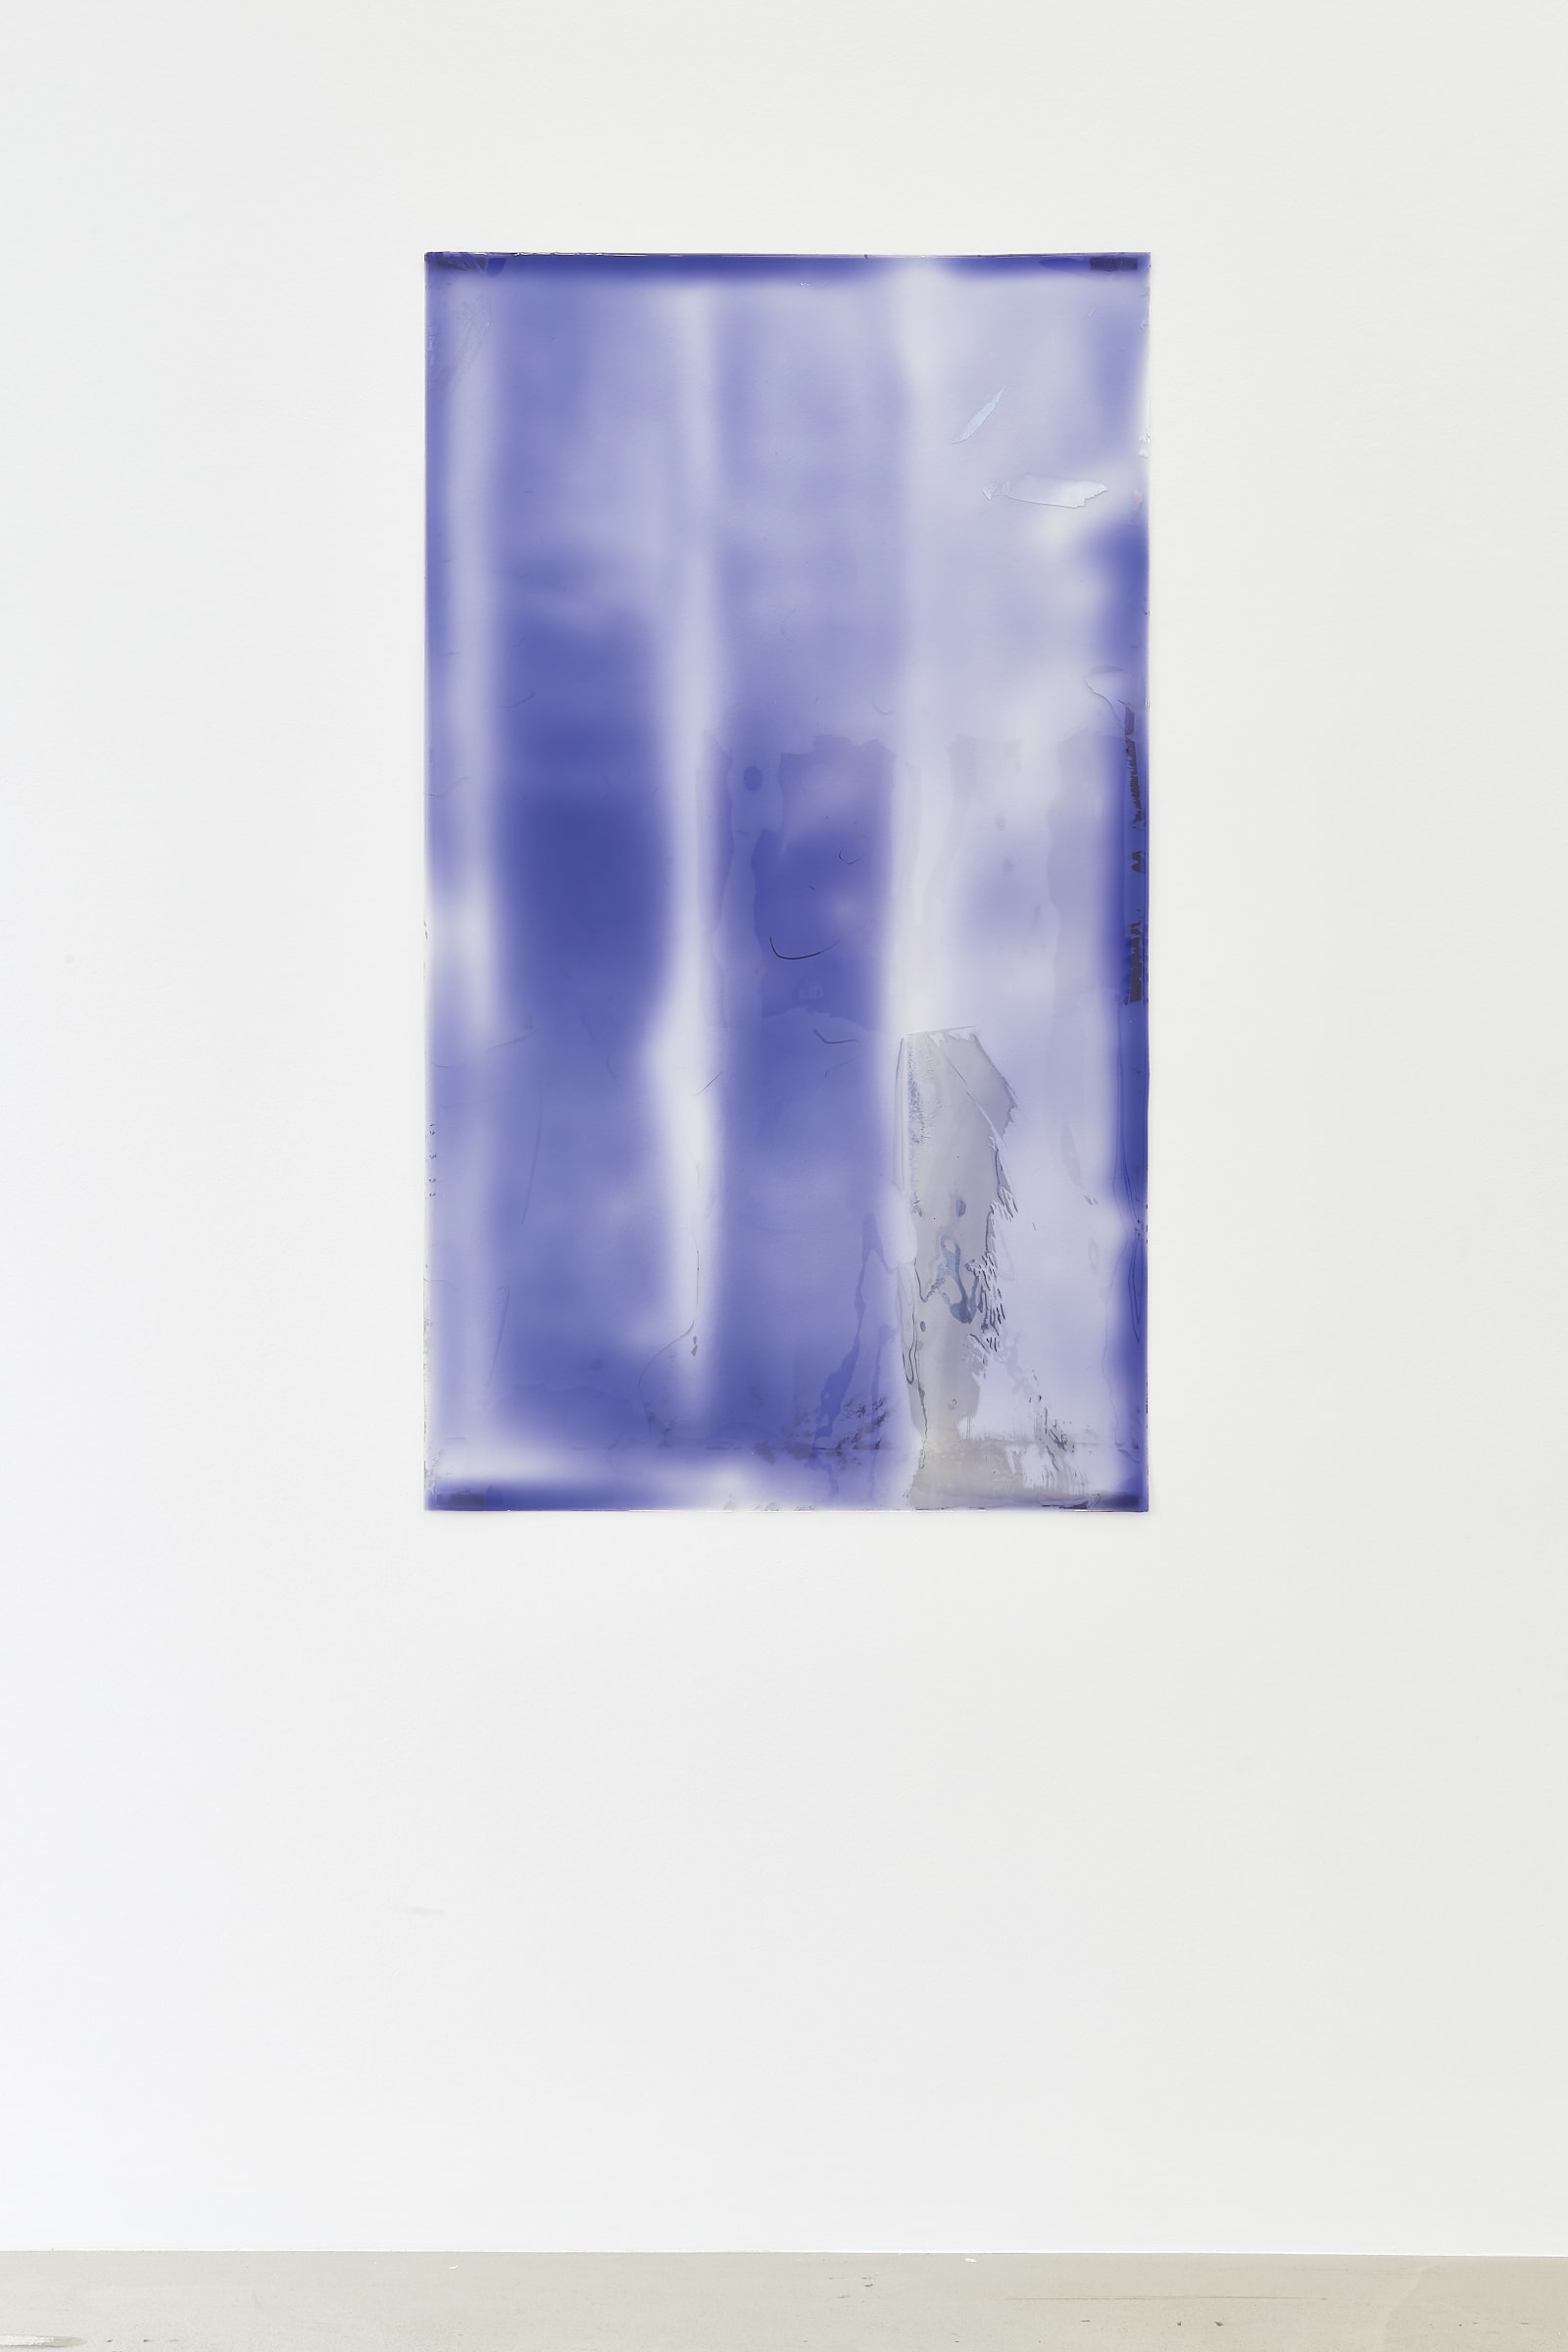 """<span class=""""link fancybox-details-link""""><a href=""""/exhibitions/186/works/artworks17846/"""">View Detail Page</a></span>Carrie Yamaoka  Peeled, 2001/2021  urethane resin, reflective polyester film, mixed media  133 x 76 cm 52 3/8 x 29 7/8 in"""